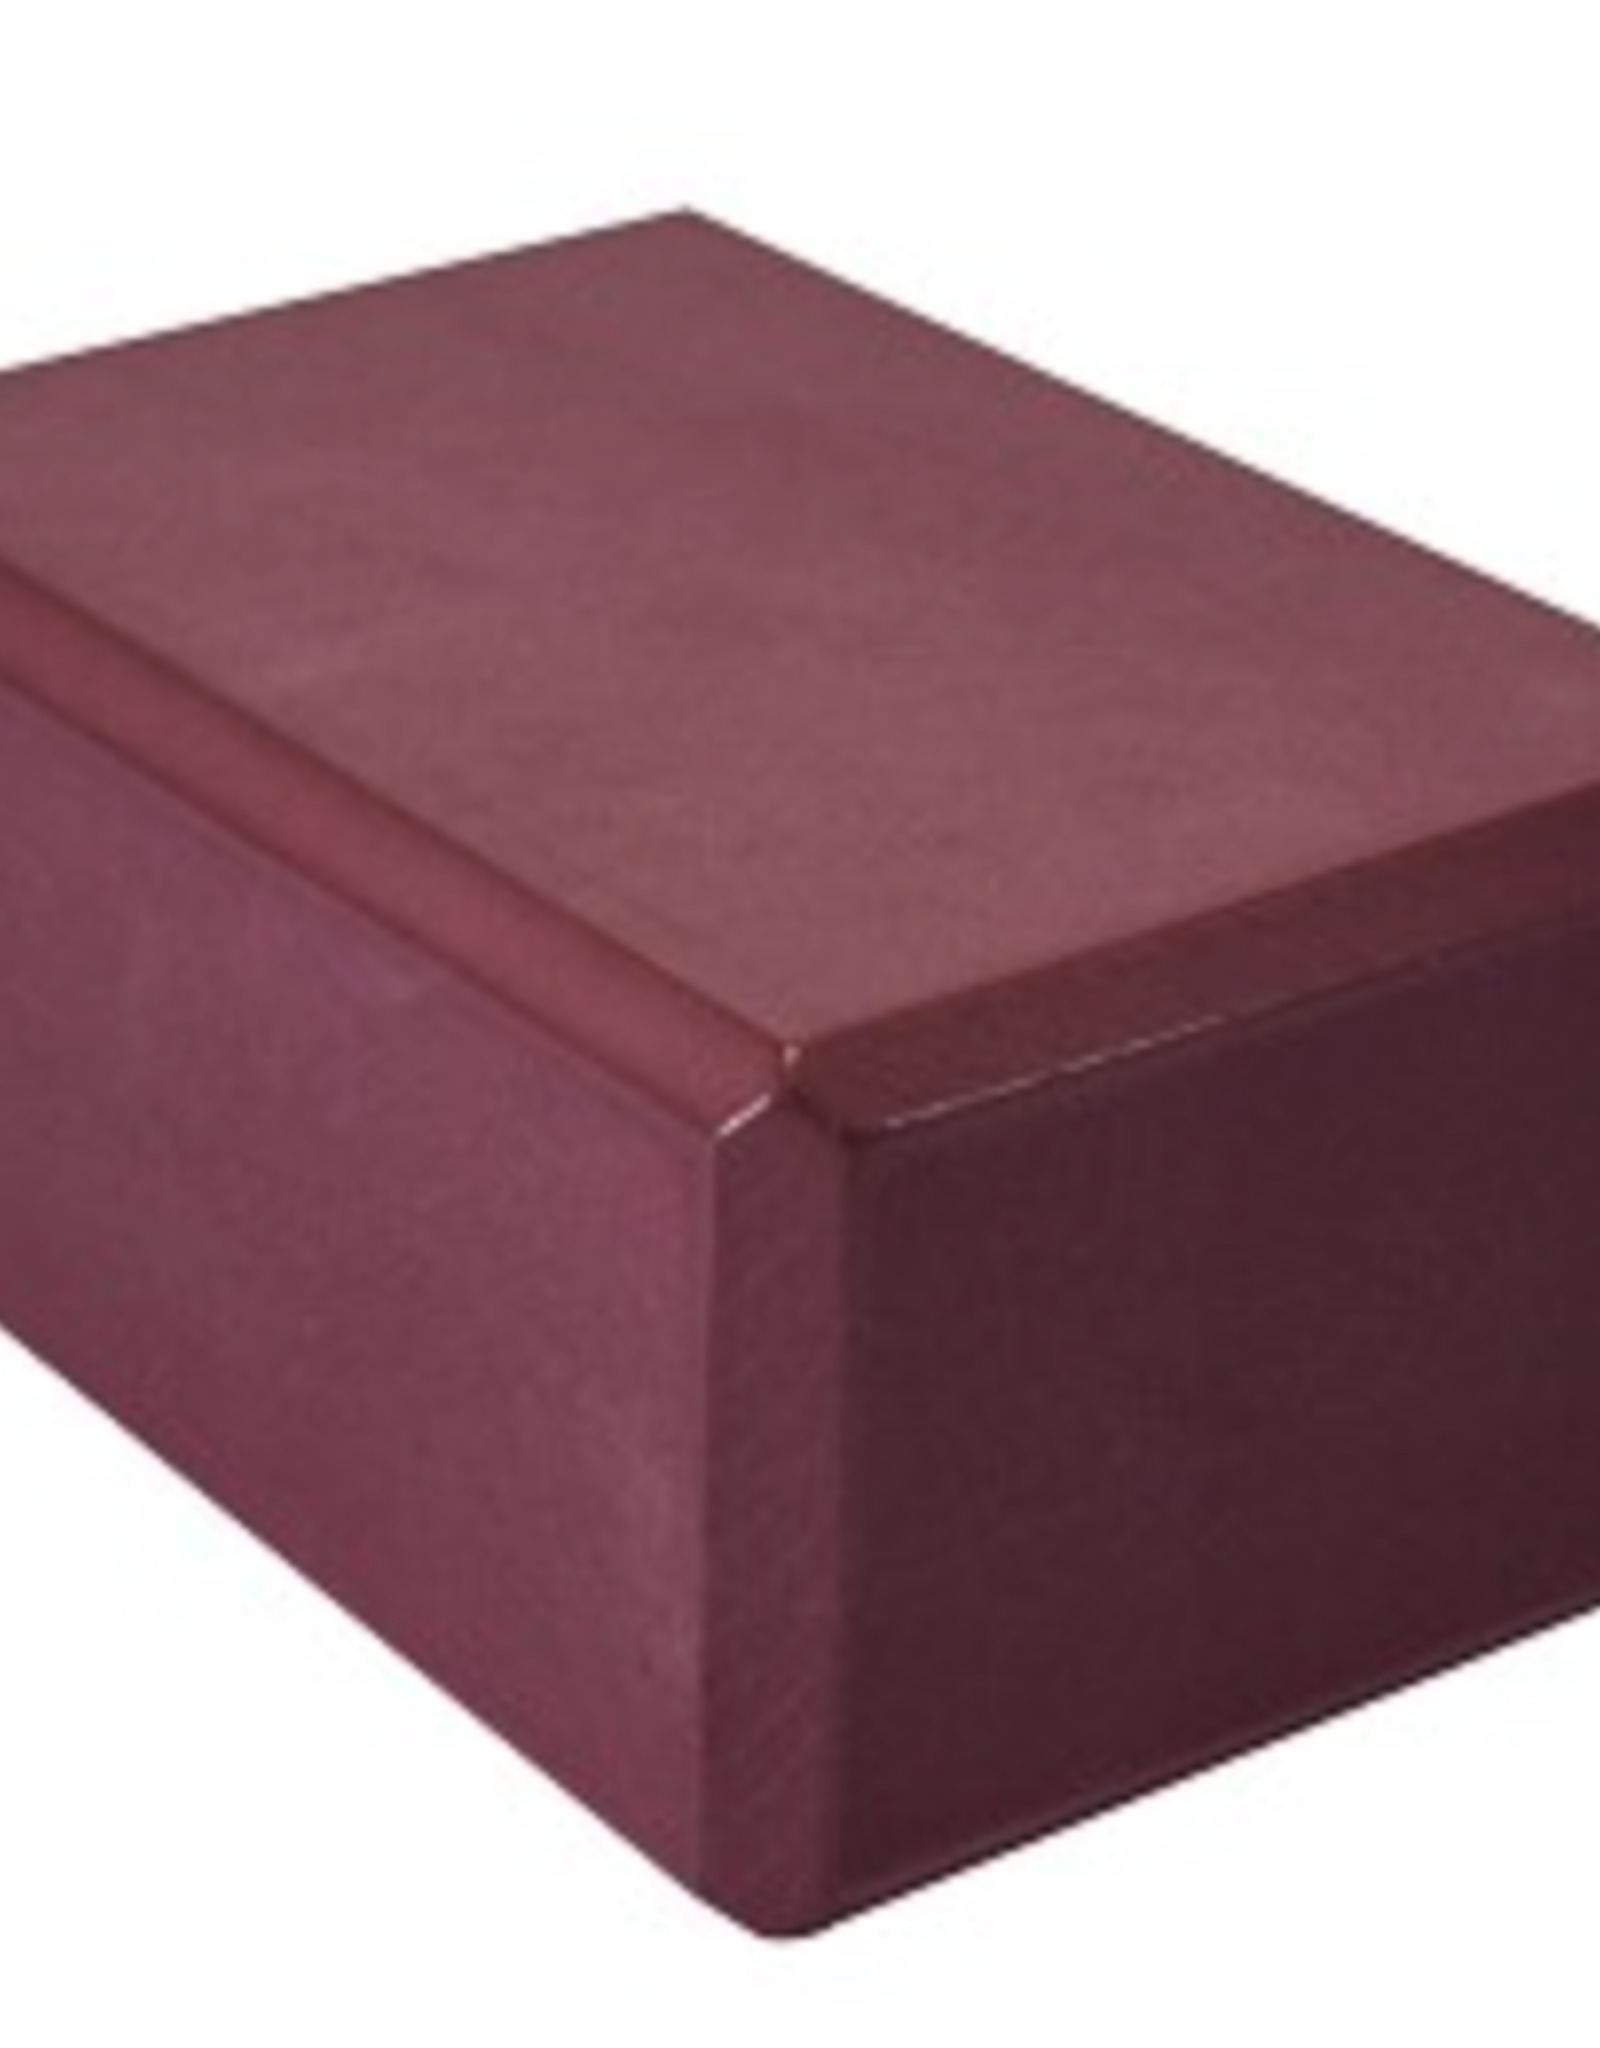 "4"" Yoga Foam Block - Burgundy"